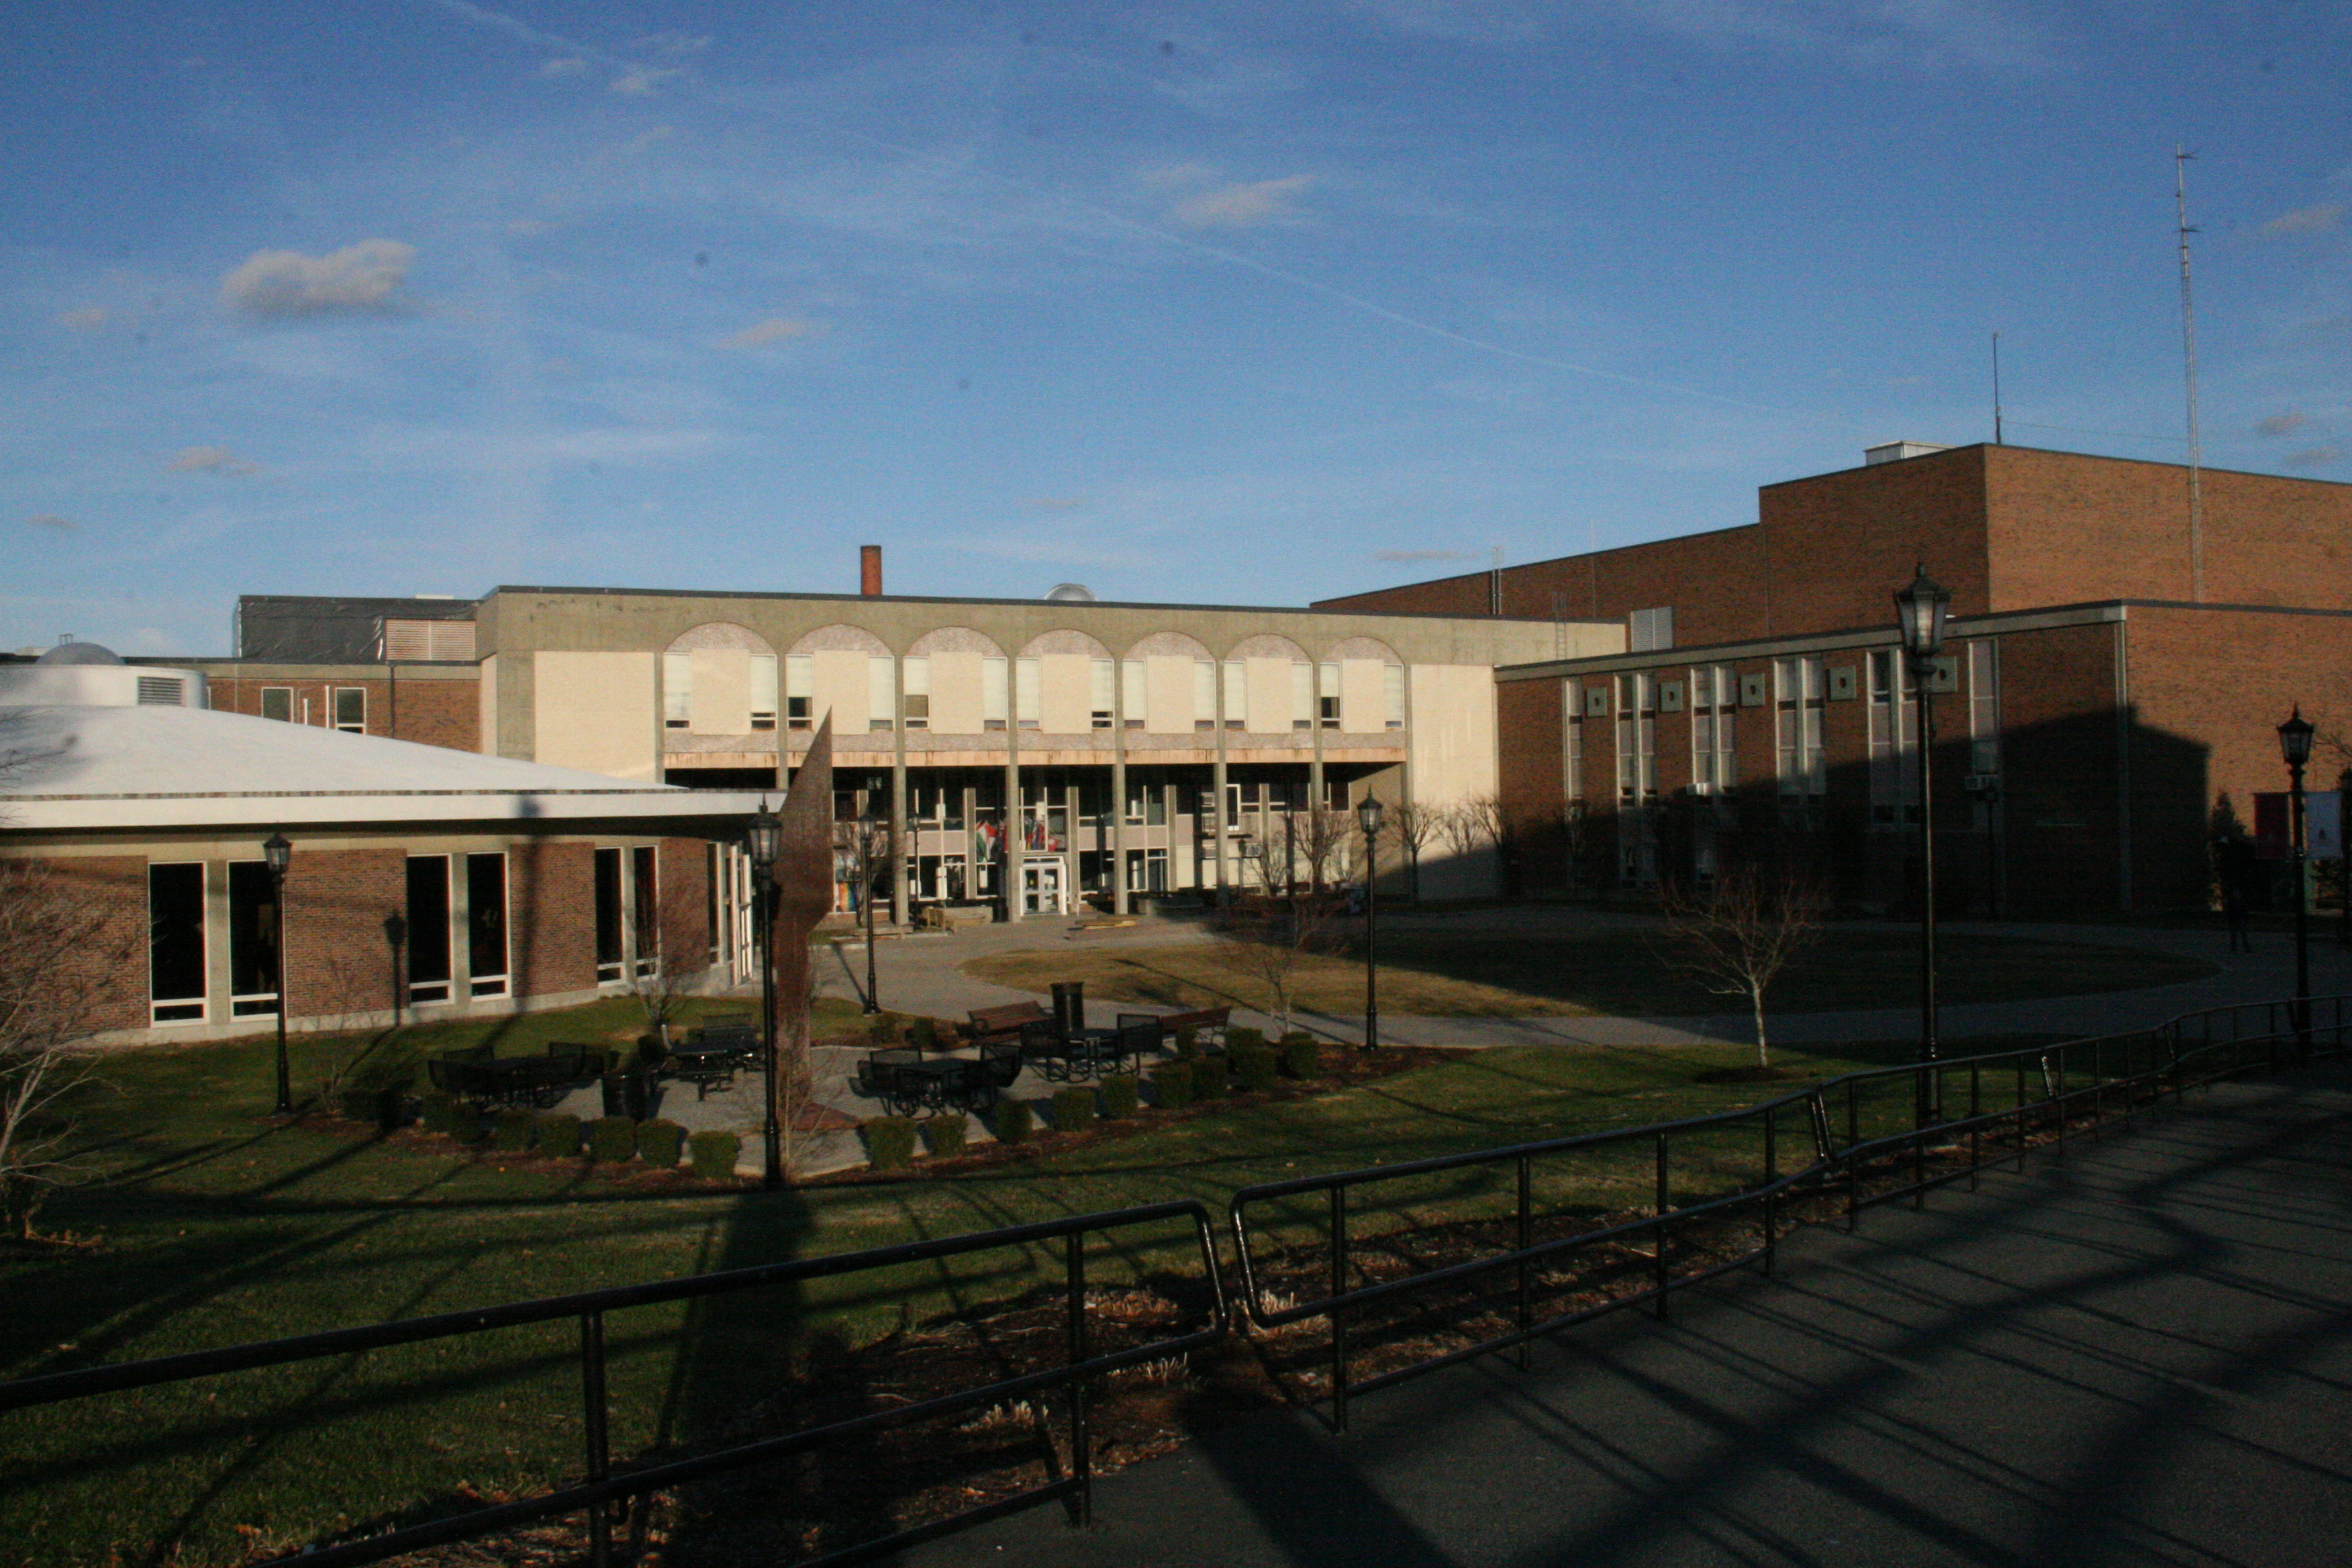 File:Rondileau Campus Center (RCC) Back.JPG - Wikimedia Commons